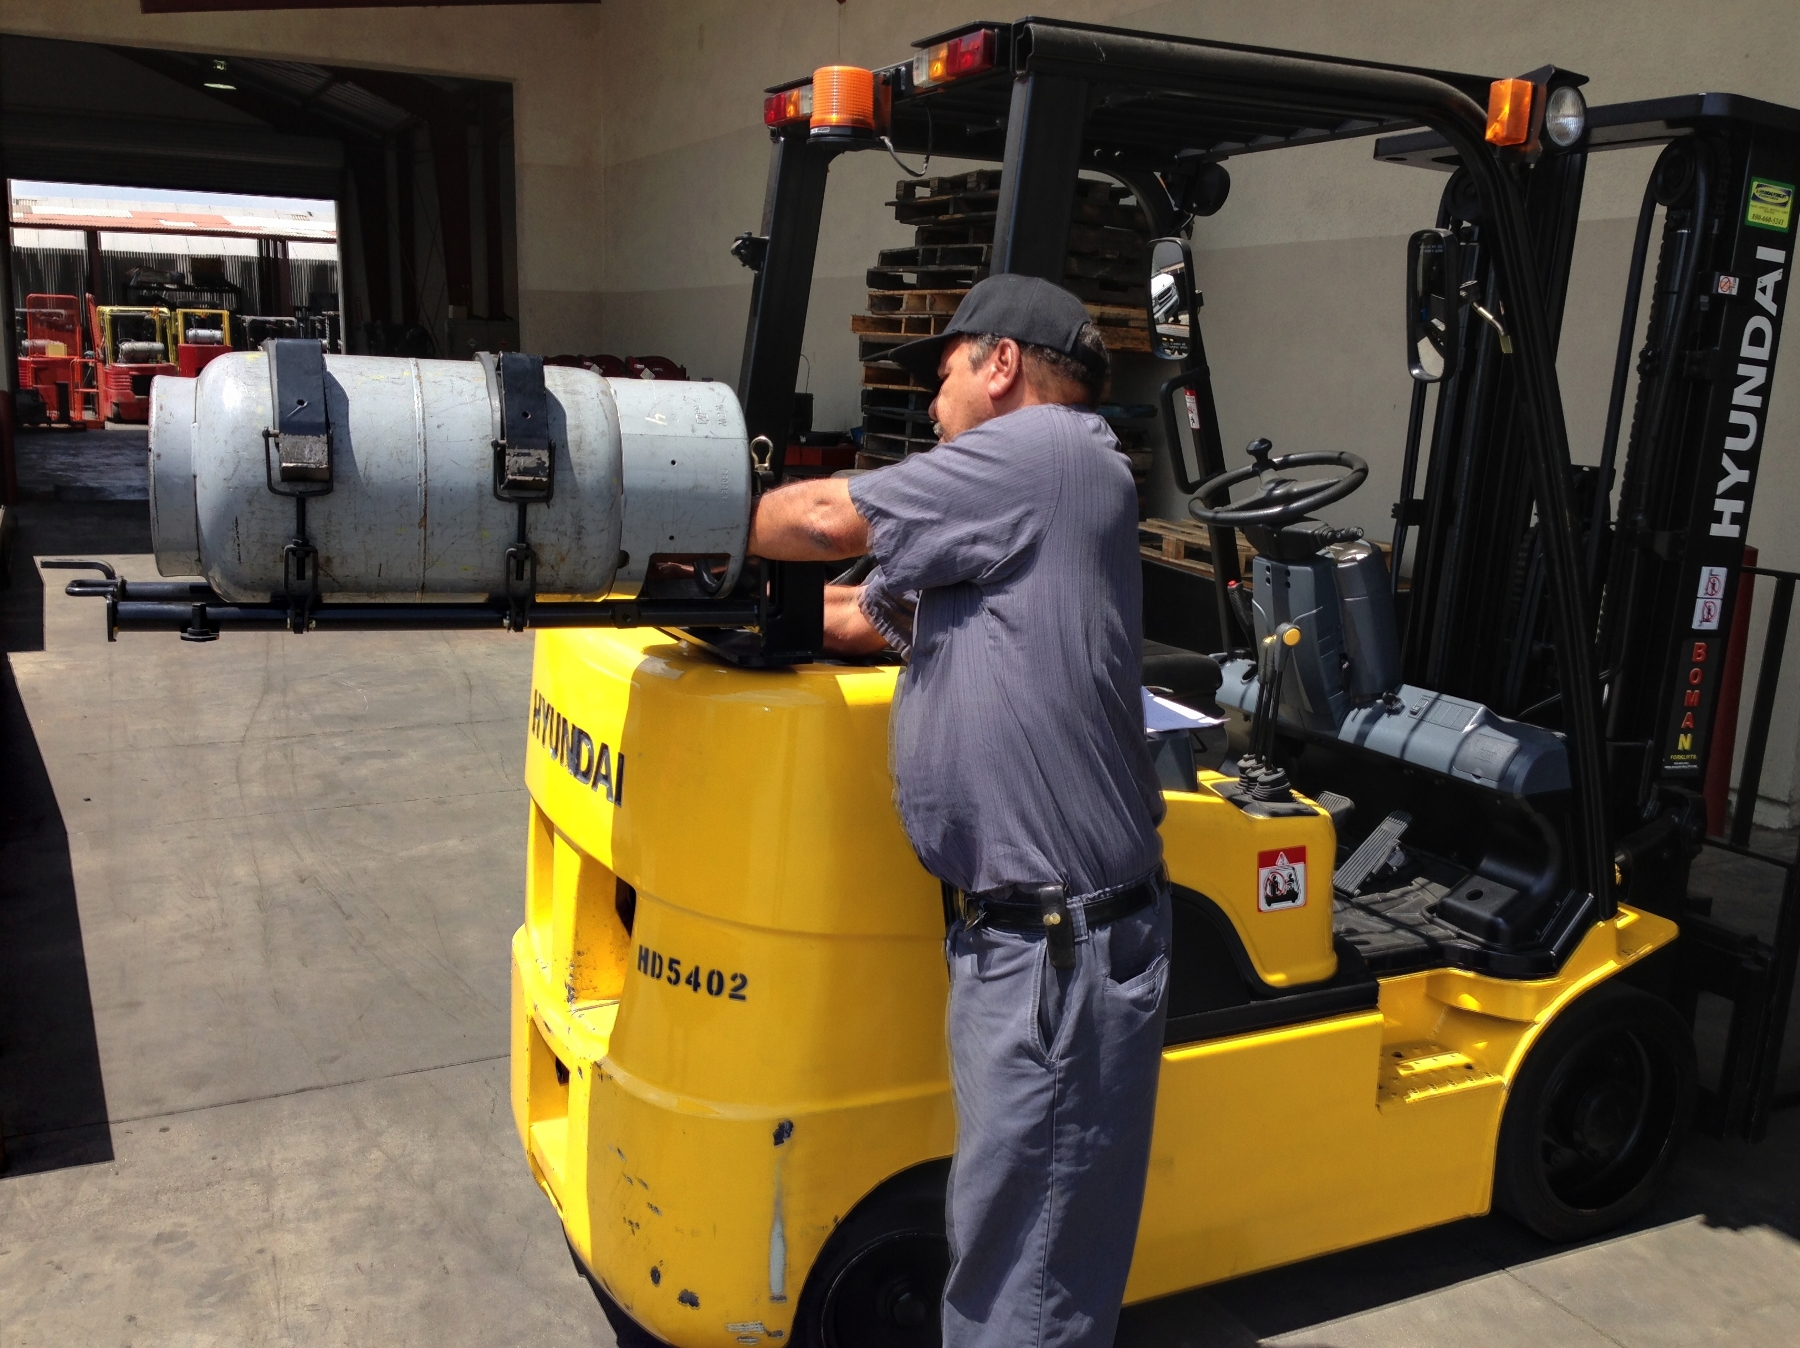 Propane Forklift Safety Training | Propane Tank Connectors